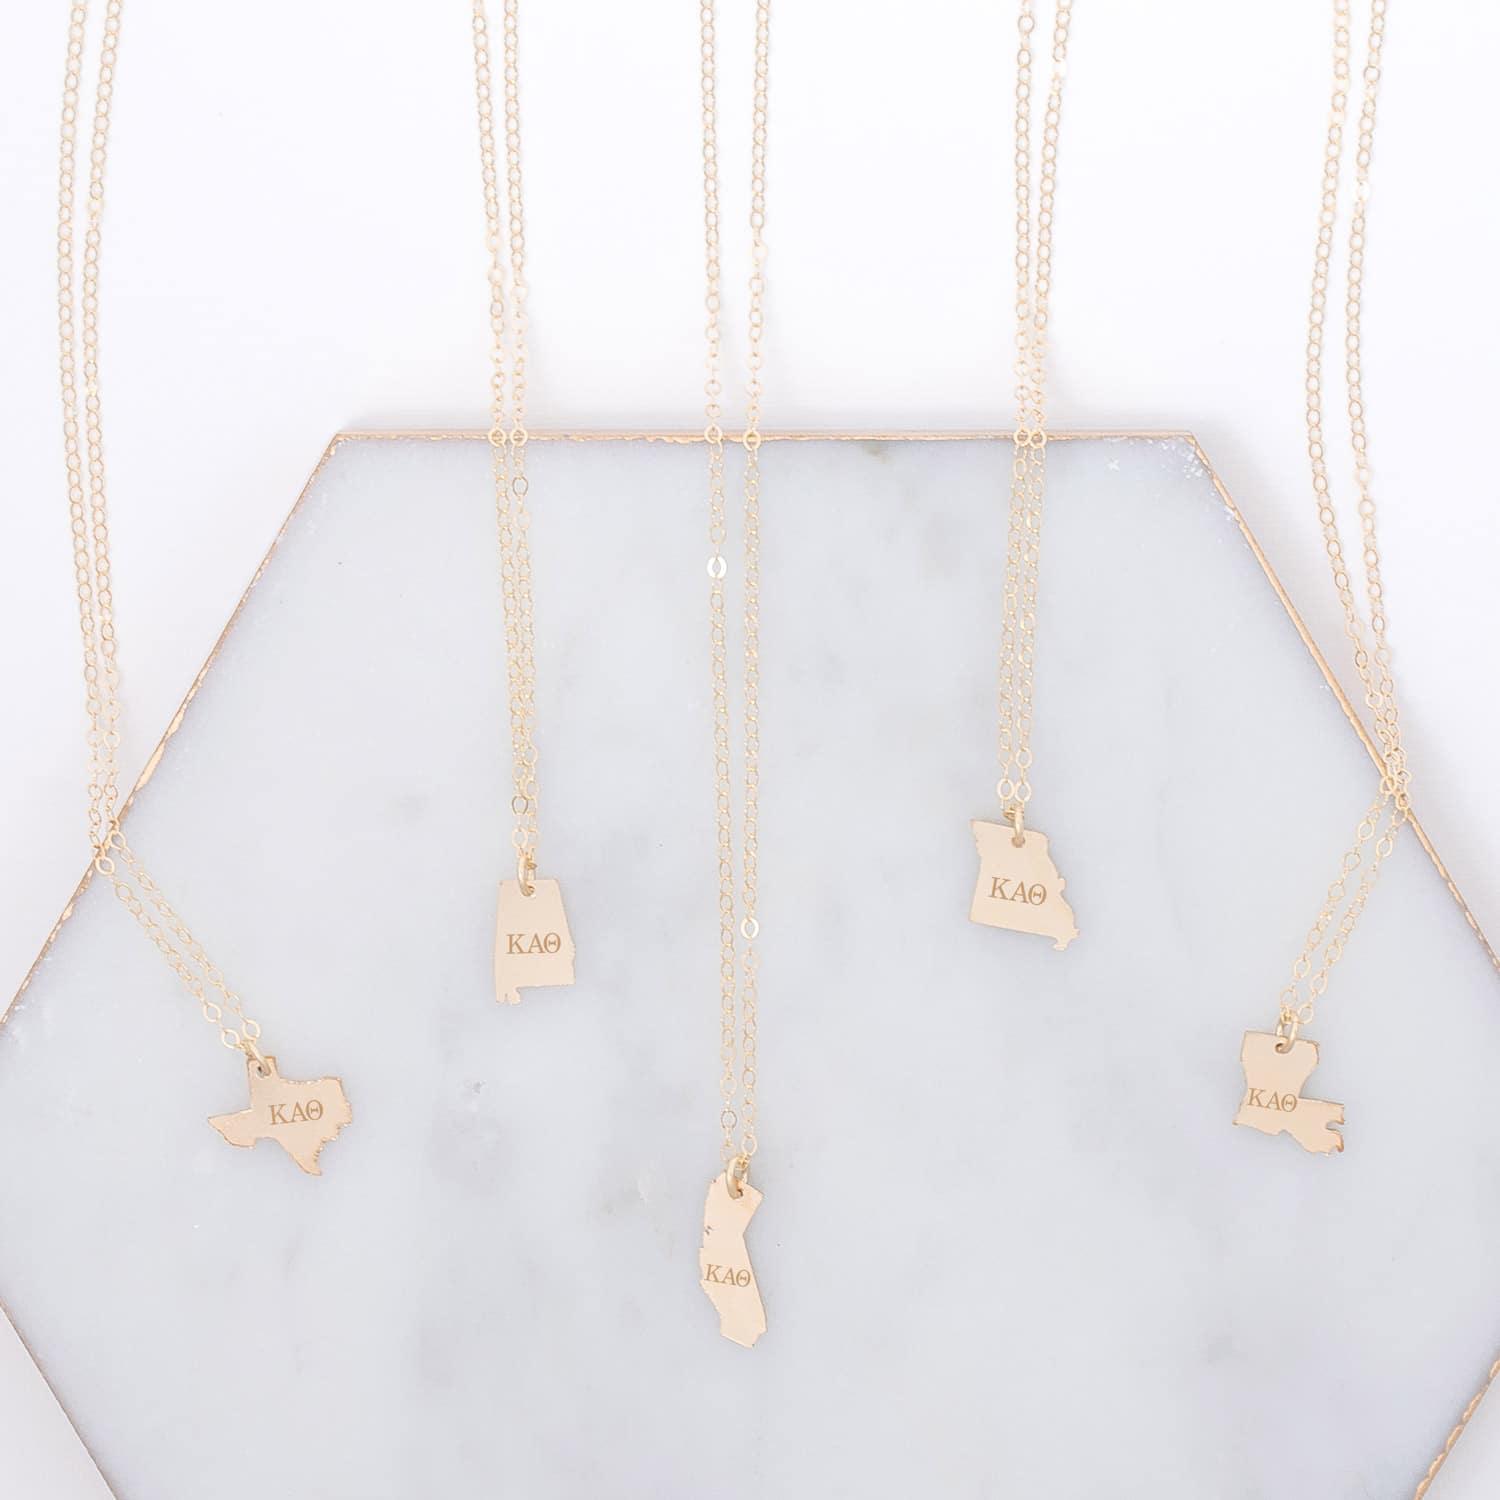 kappa-alpha-theta-state-necklace-gold-compilation-on-marble